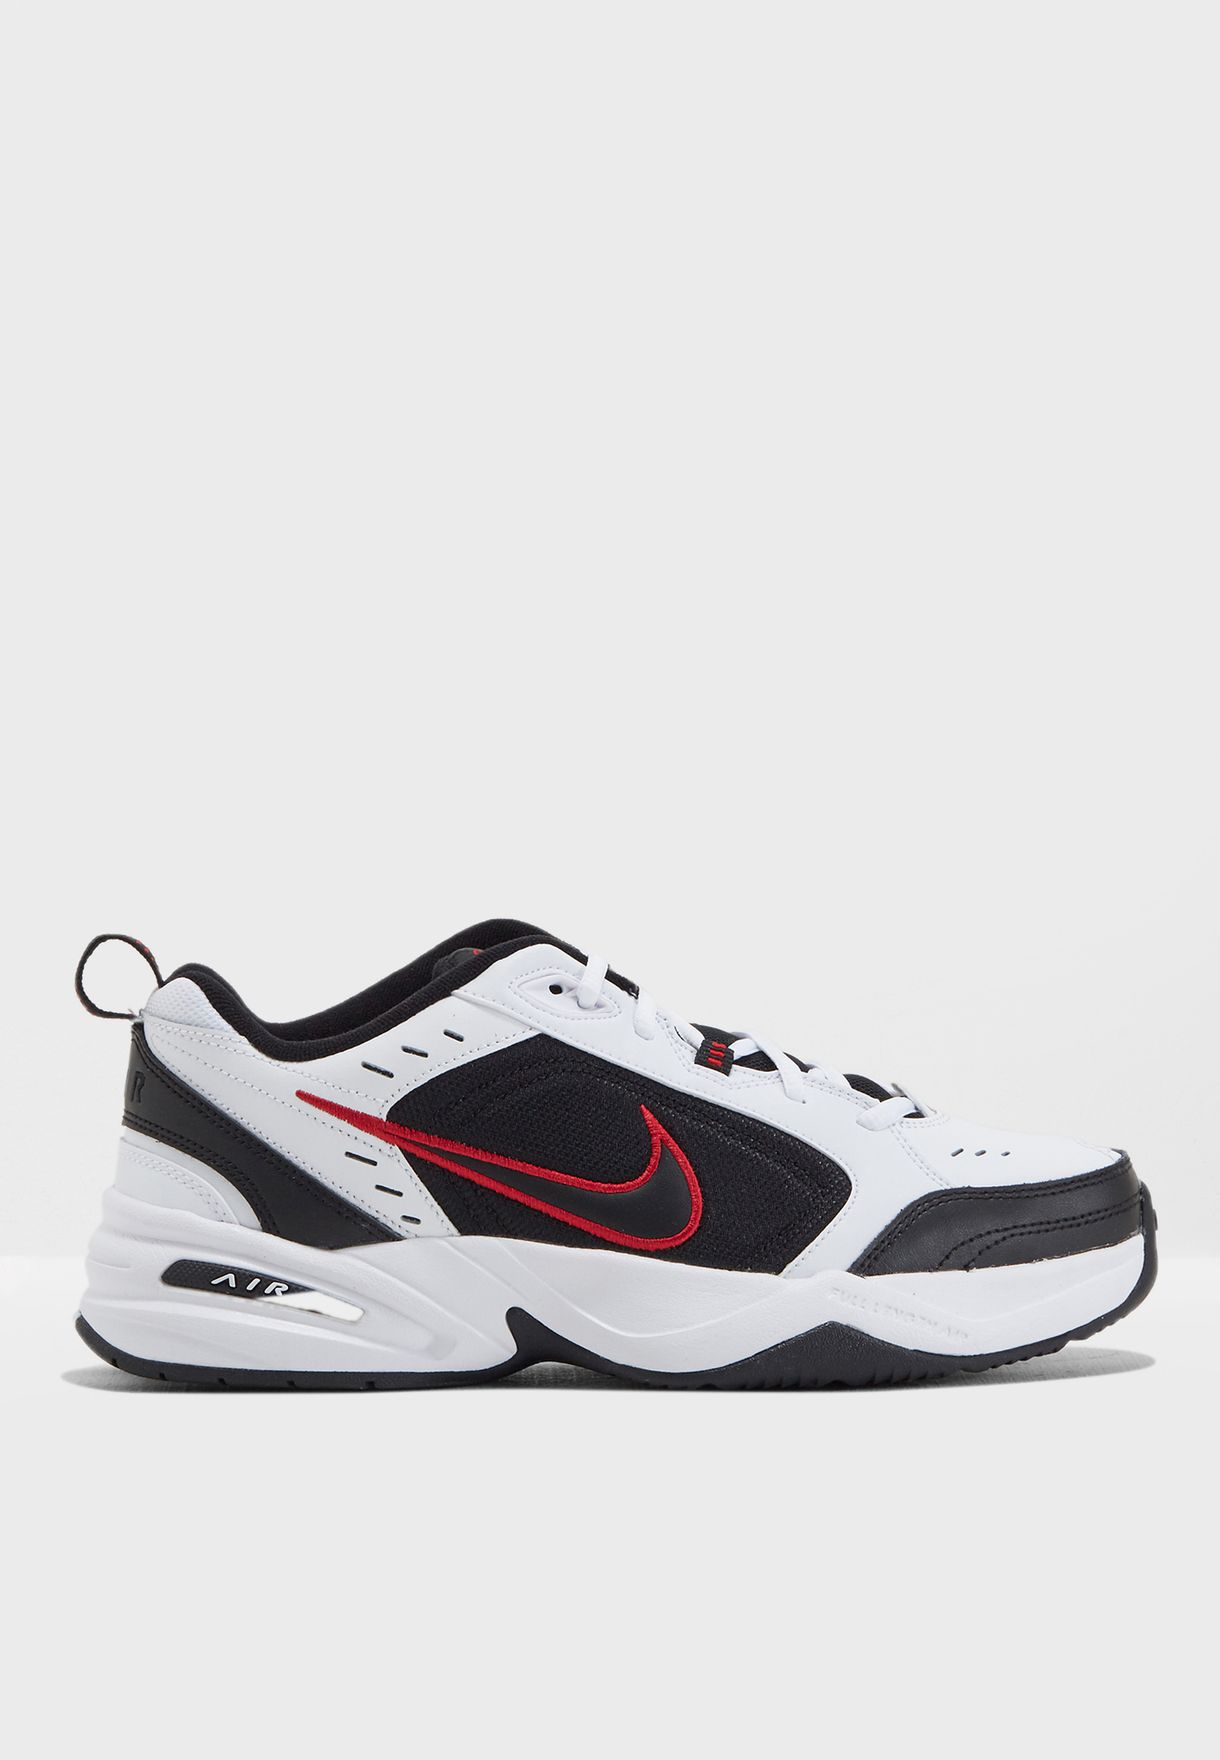 sports shoes 970f1 ce155 Shop Nike multicolor Air Monarch IV 415445-101 for Men in UAE ...